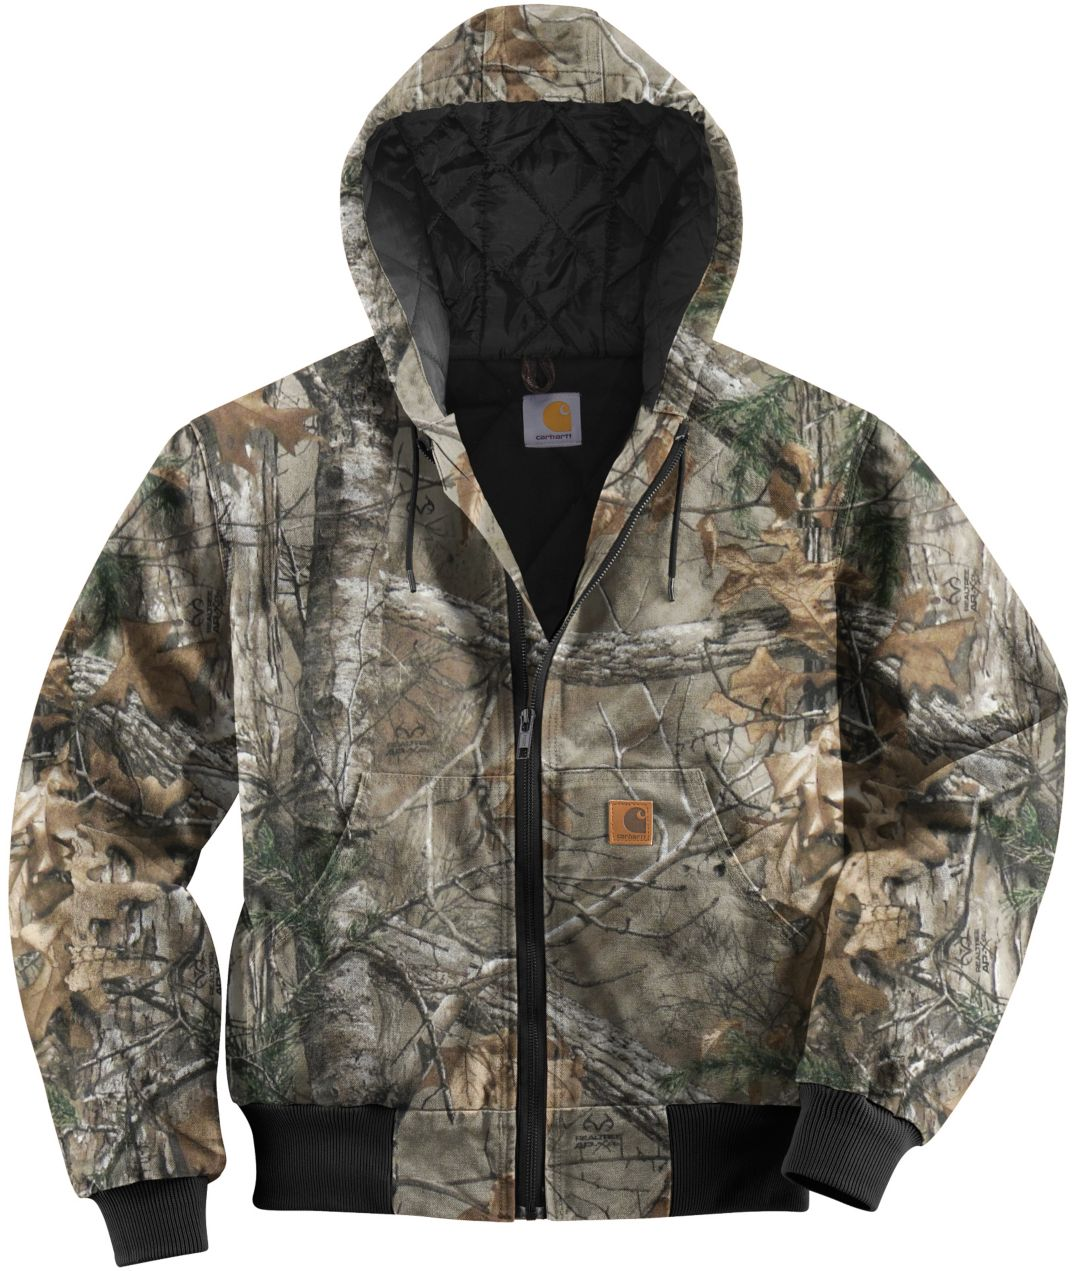 c6e5c80157492 Carhartt Men's Quilted-Flannel Lined Camo Active Jacket. noImageFound. 1